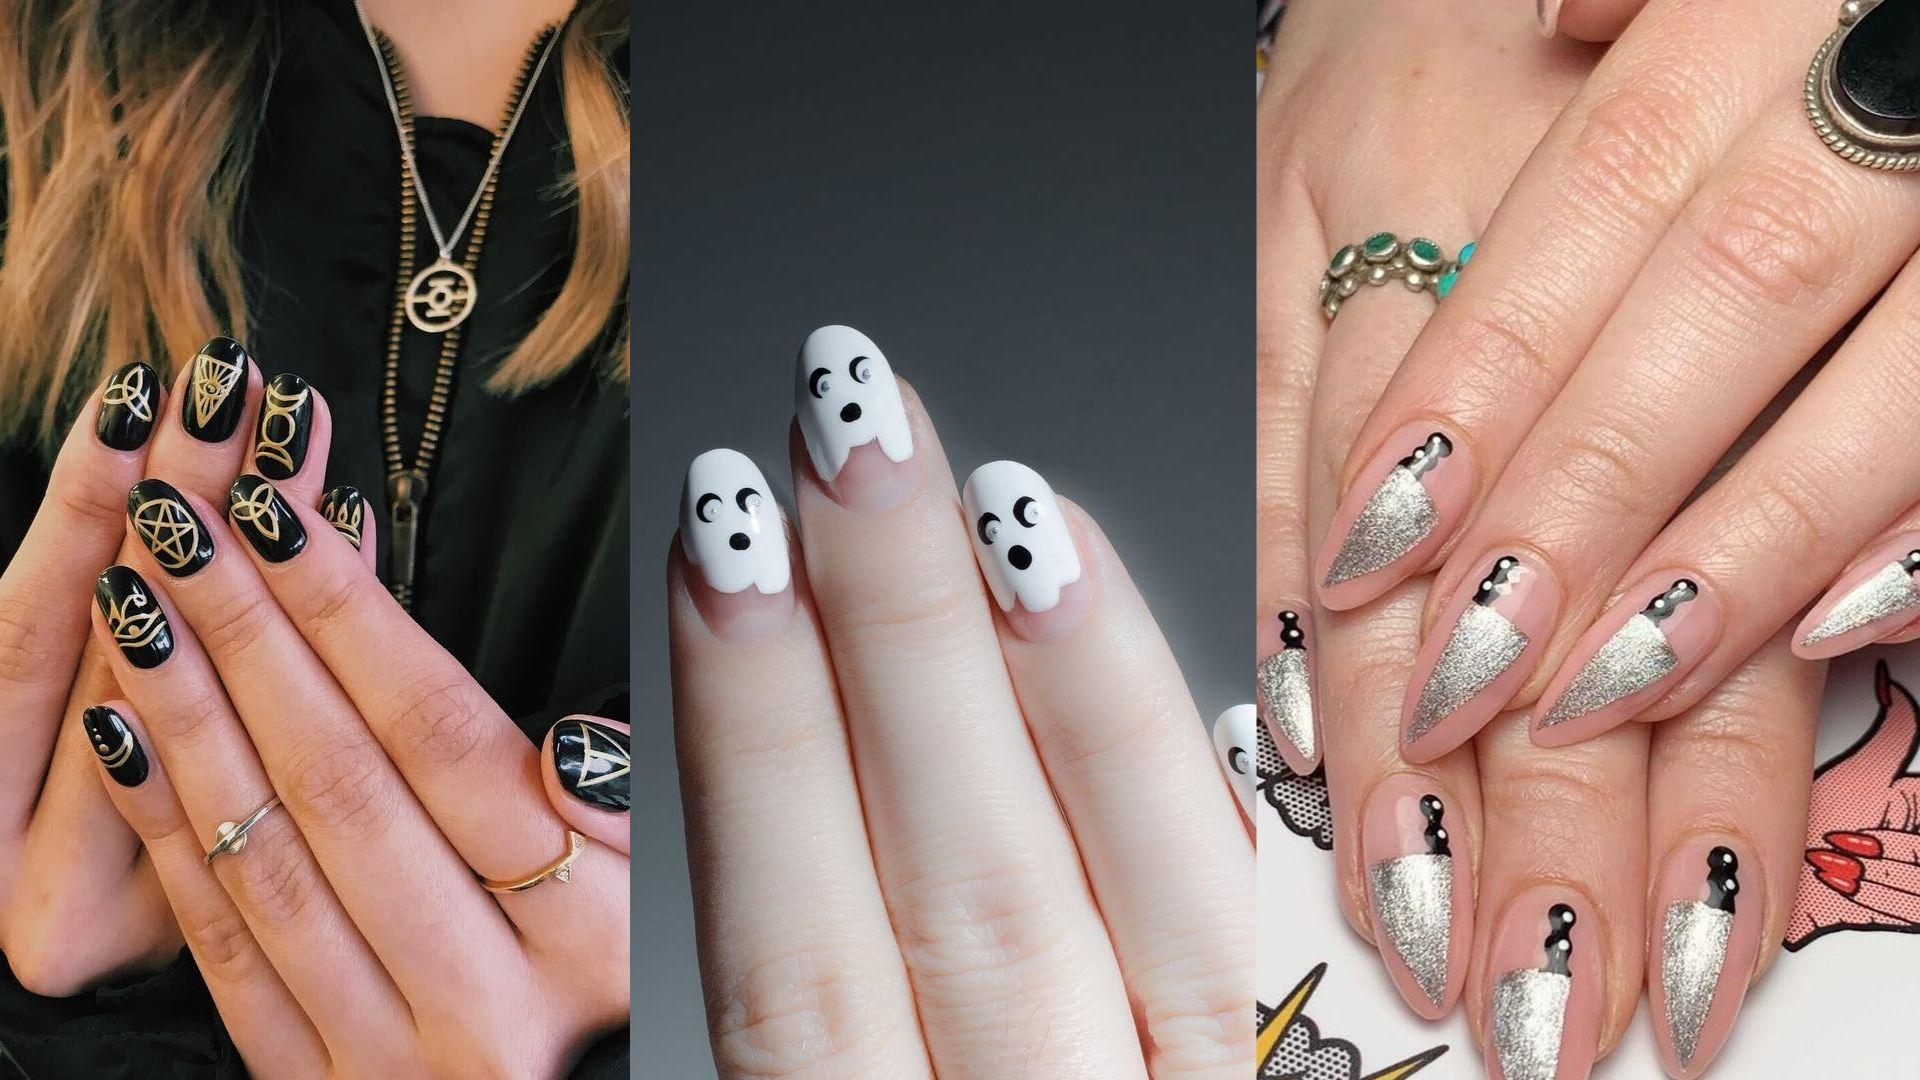 10 Stunning And Spooky Nail Art Ideas For Halloween